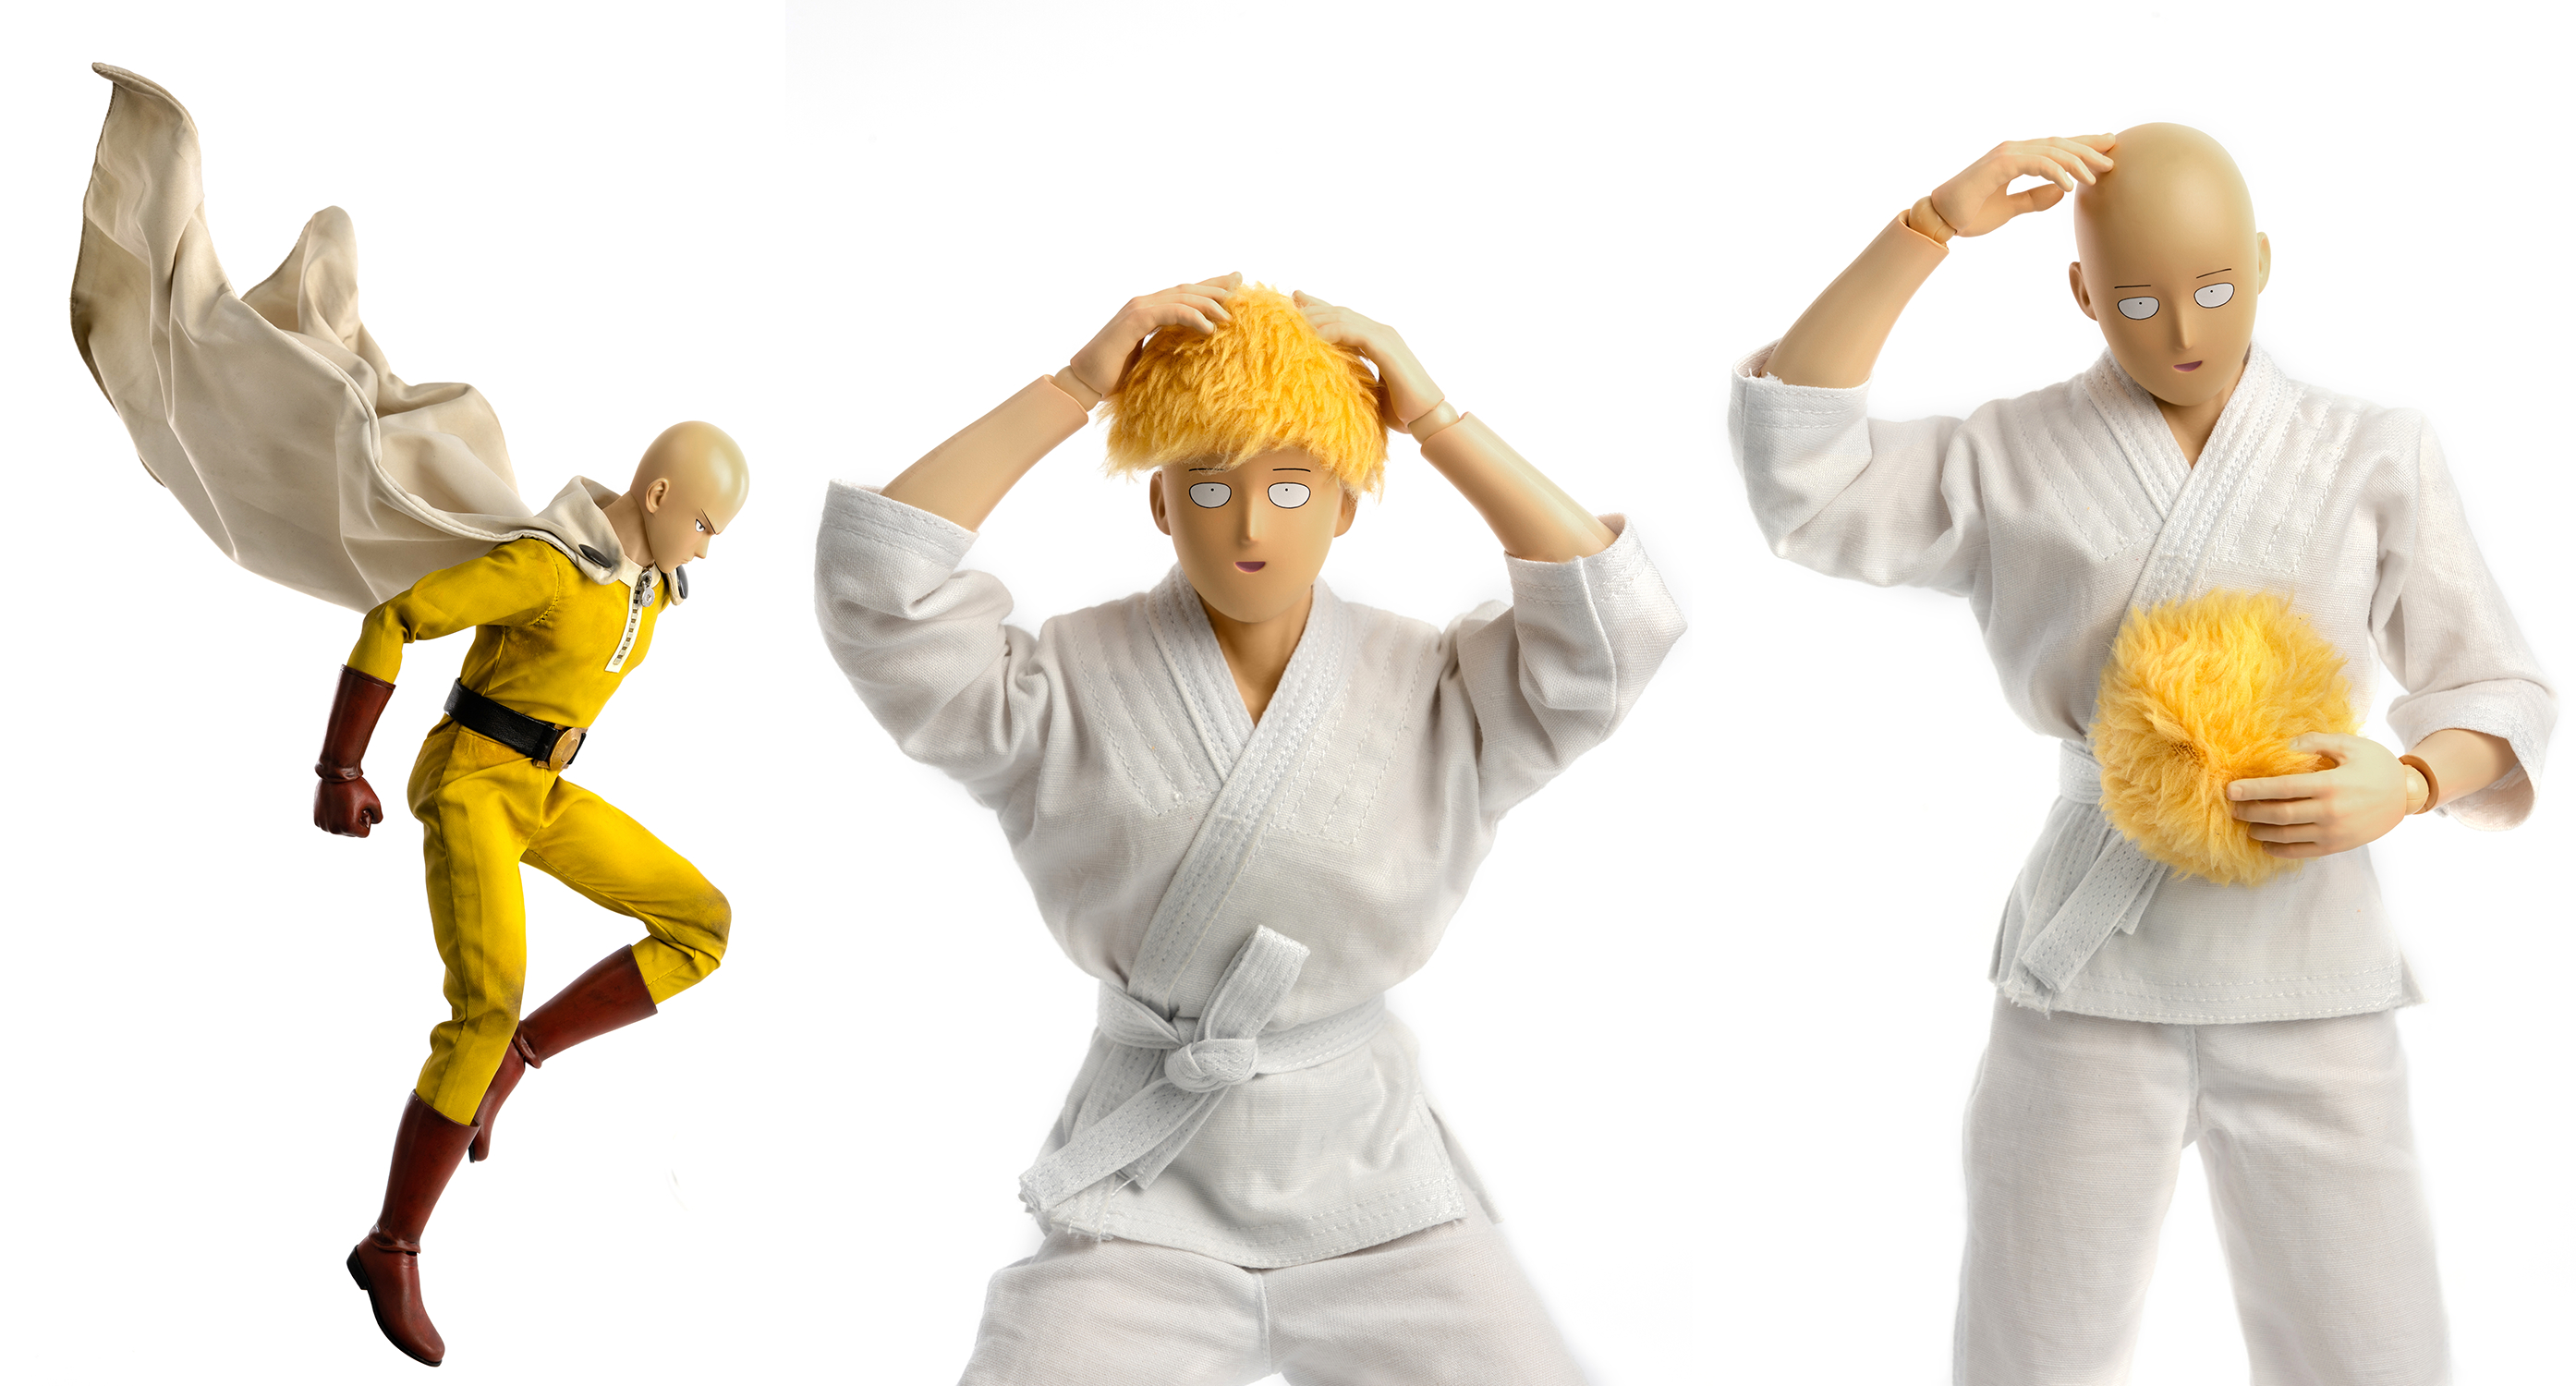 ONE PUNCH MAN SEASON 2 SAITAMA 1/6 SCALE FIG DLX ED  (C